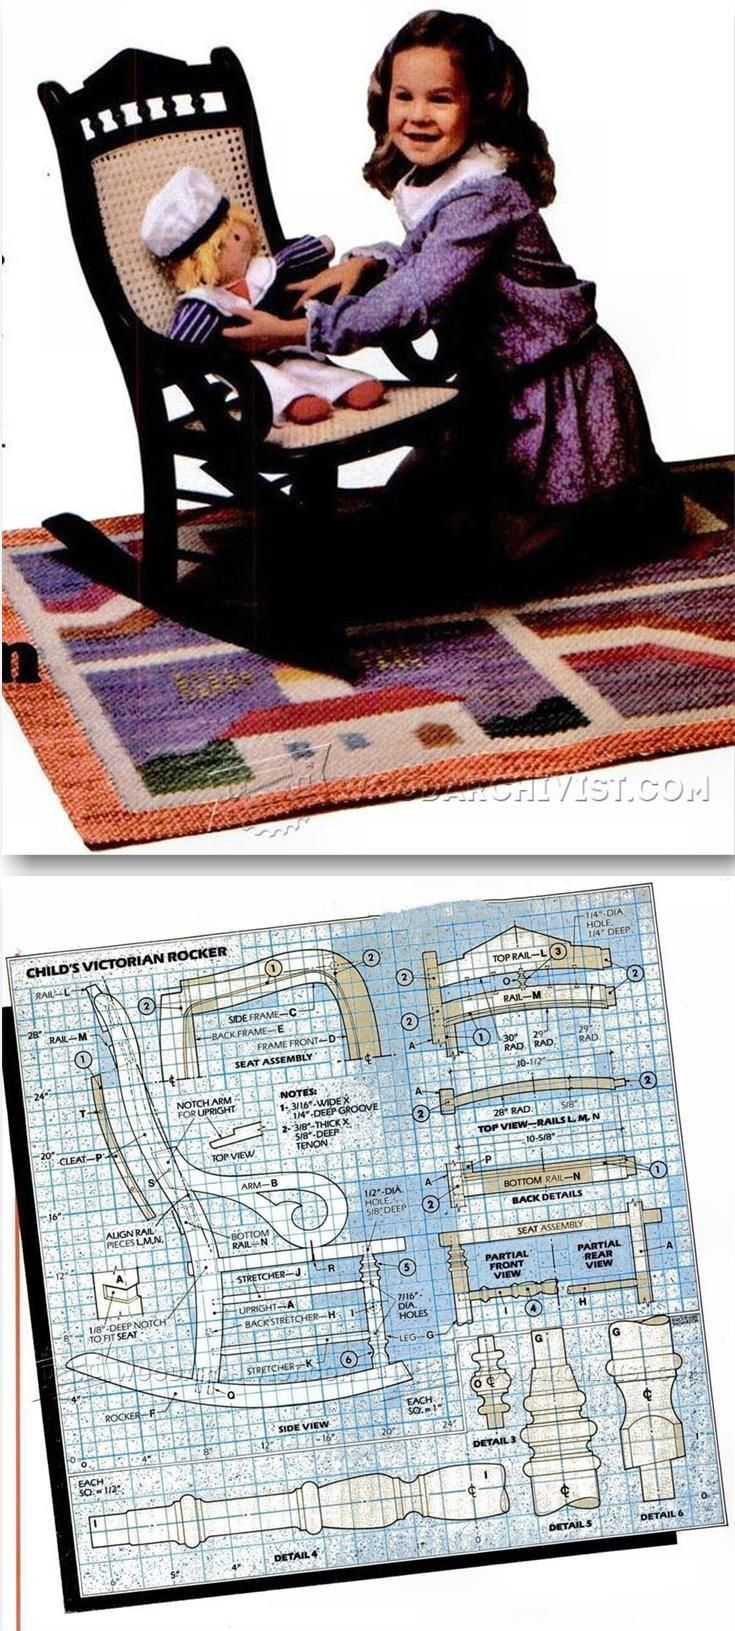 Victorian Rocking Chair Plans - Children's Furniture Plans and Projects | WoodArchivist.com